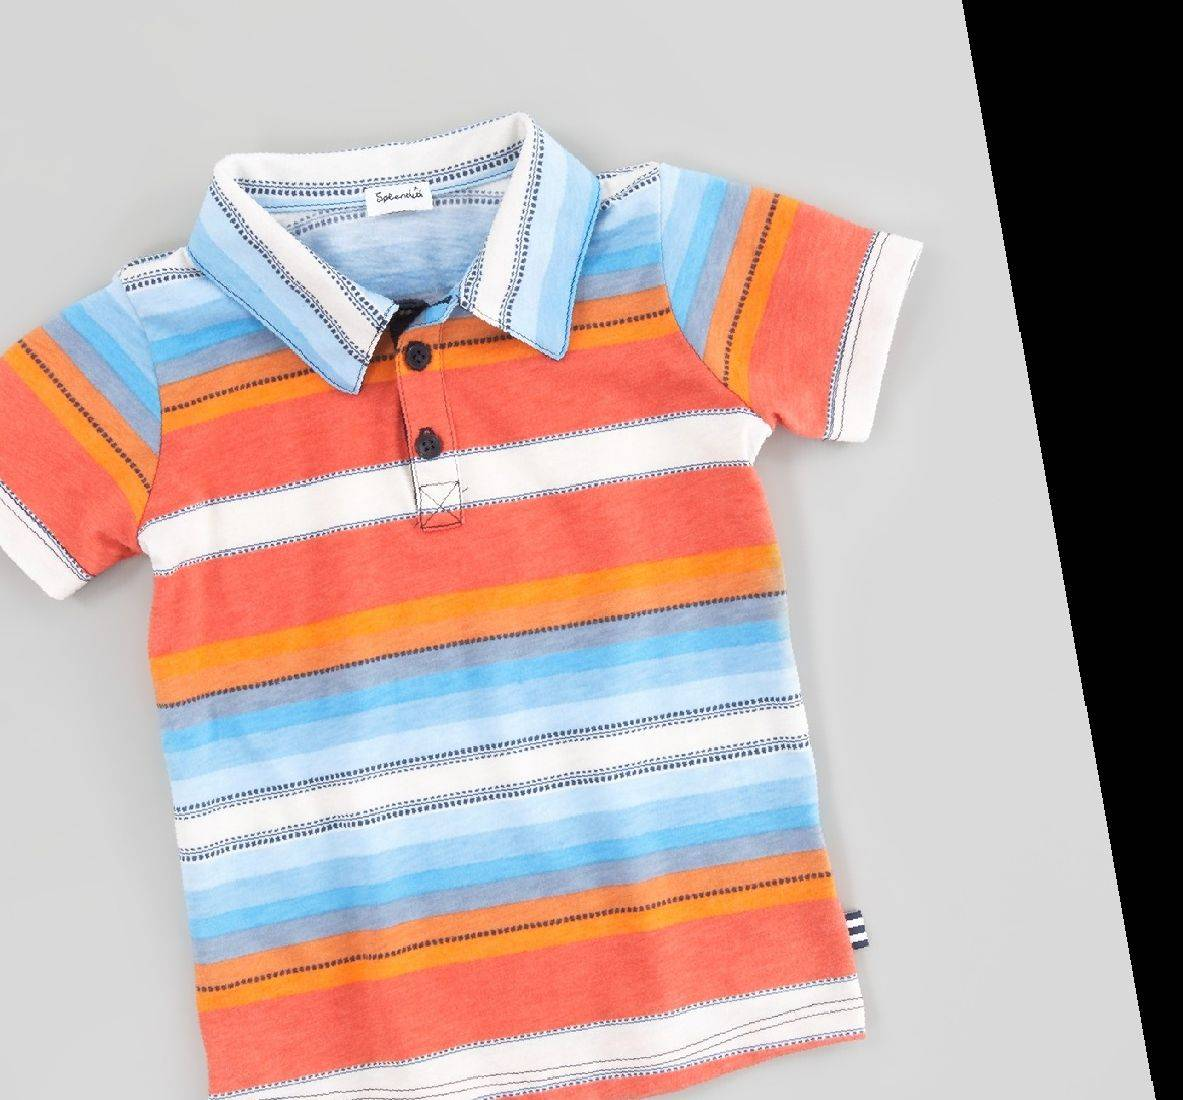 Classic stripes are the pick of the season for boys, including preschoolers. $25.95 at The Children's Place, childrensplace.com